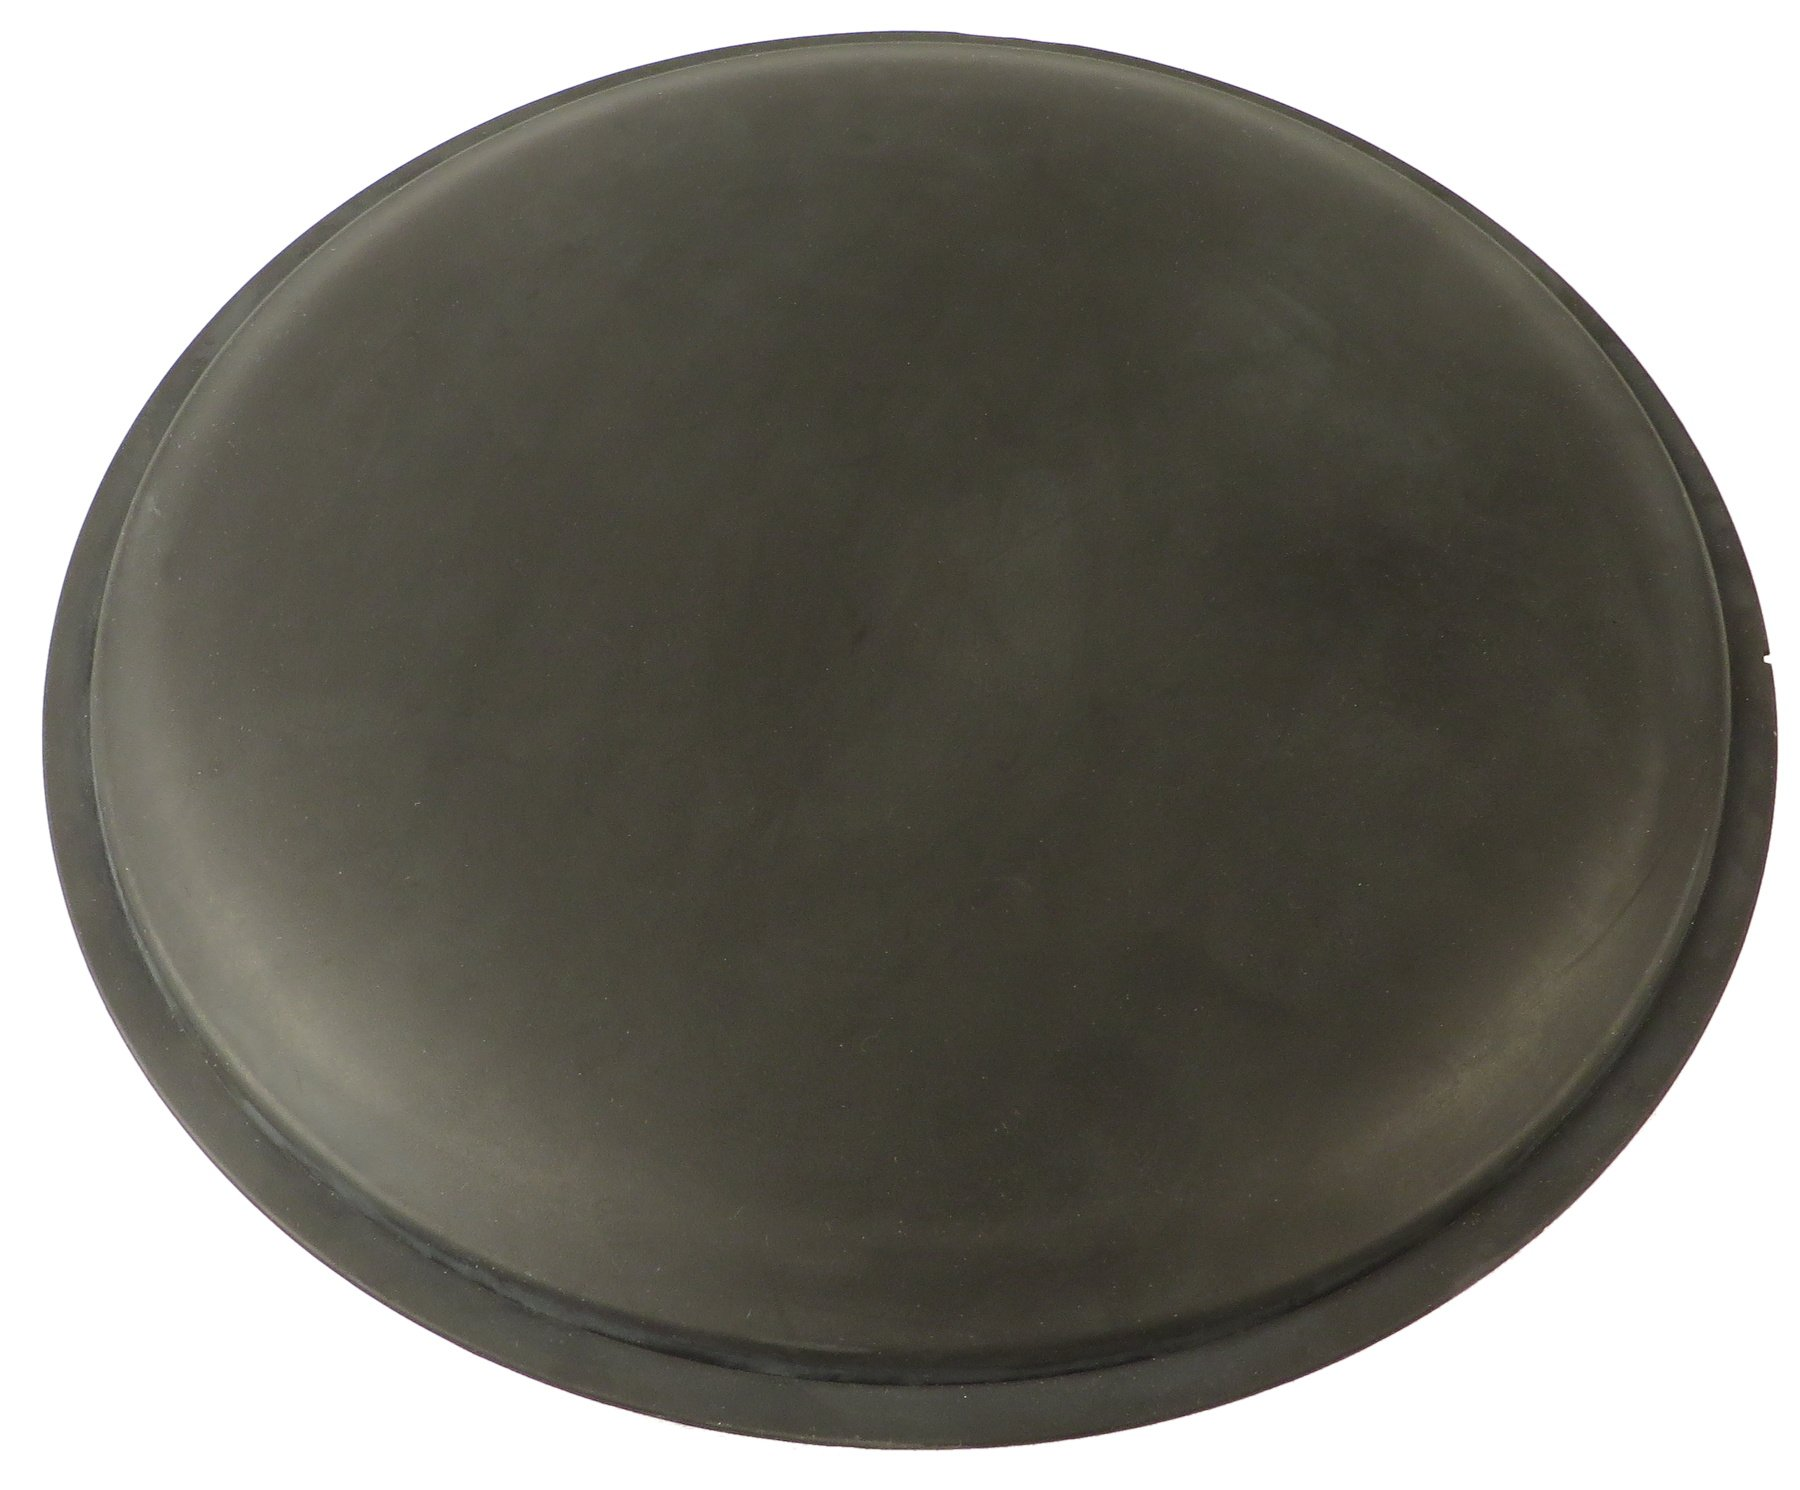 Yamaha WK748000 Rubber Pad Assembly for KP125 WK748000